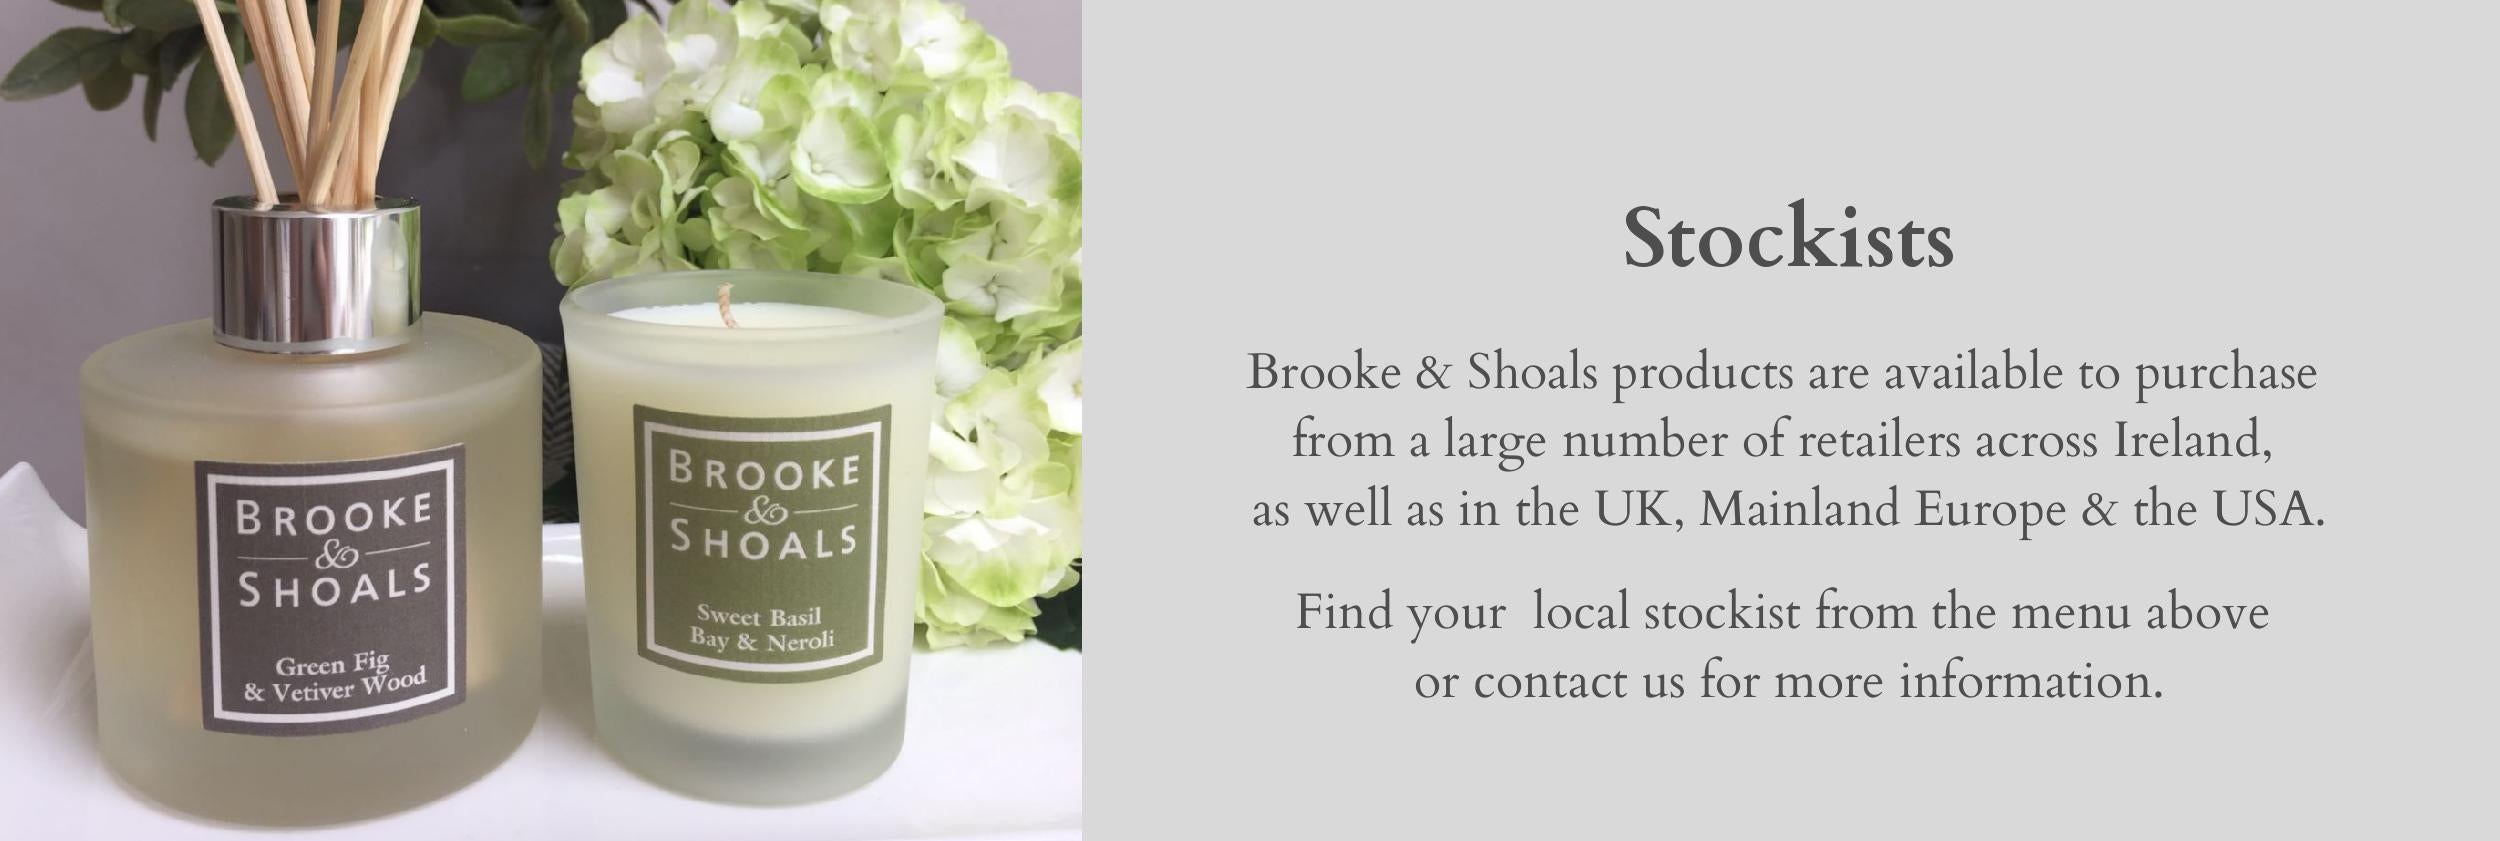 Brooke & Shoals Stockists